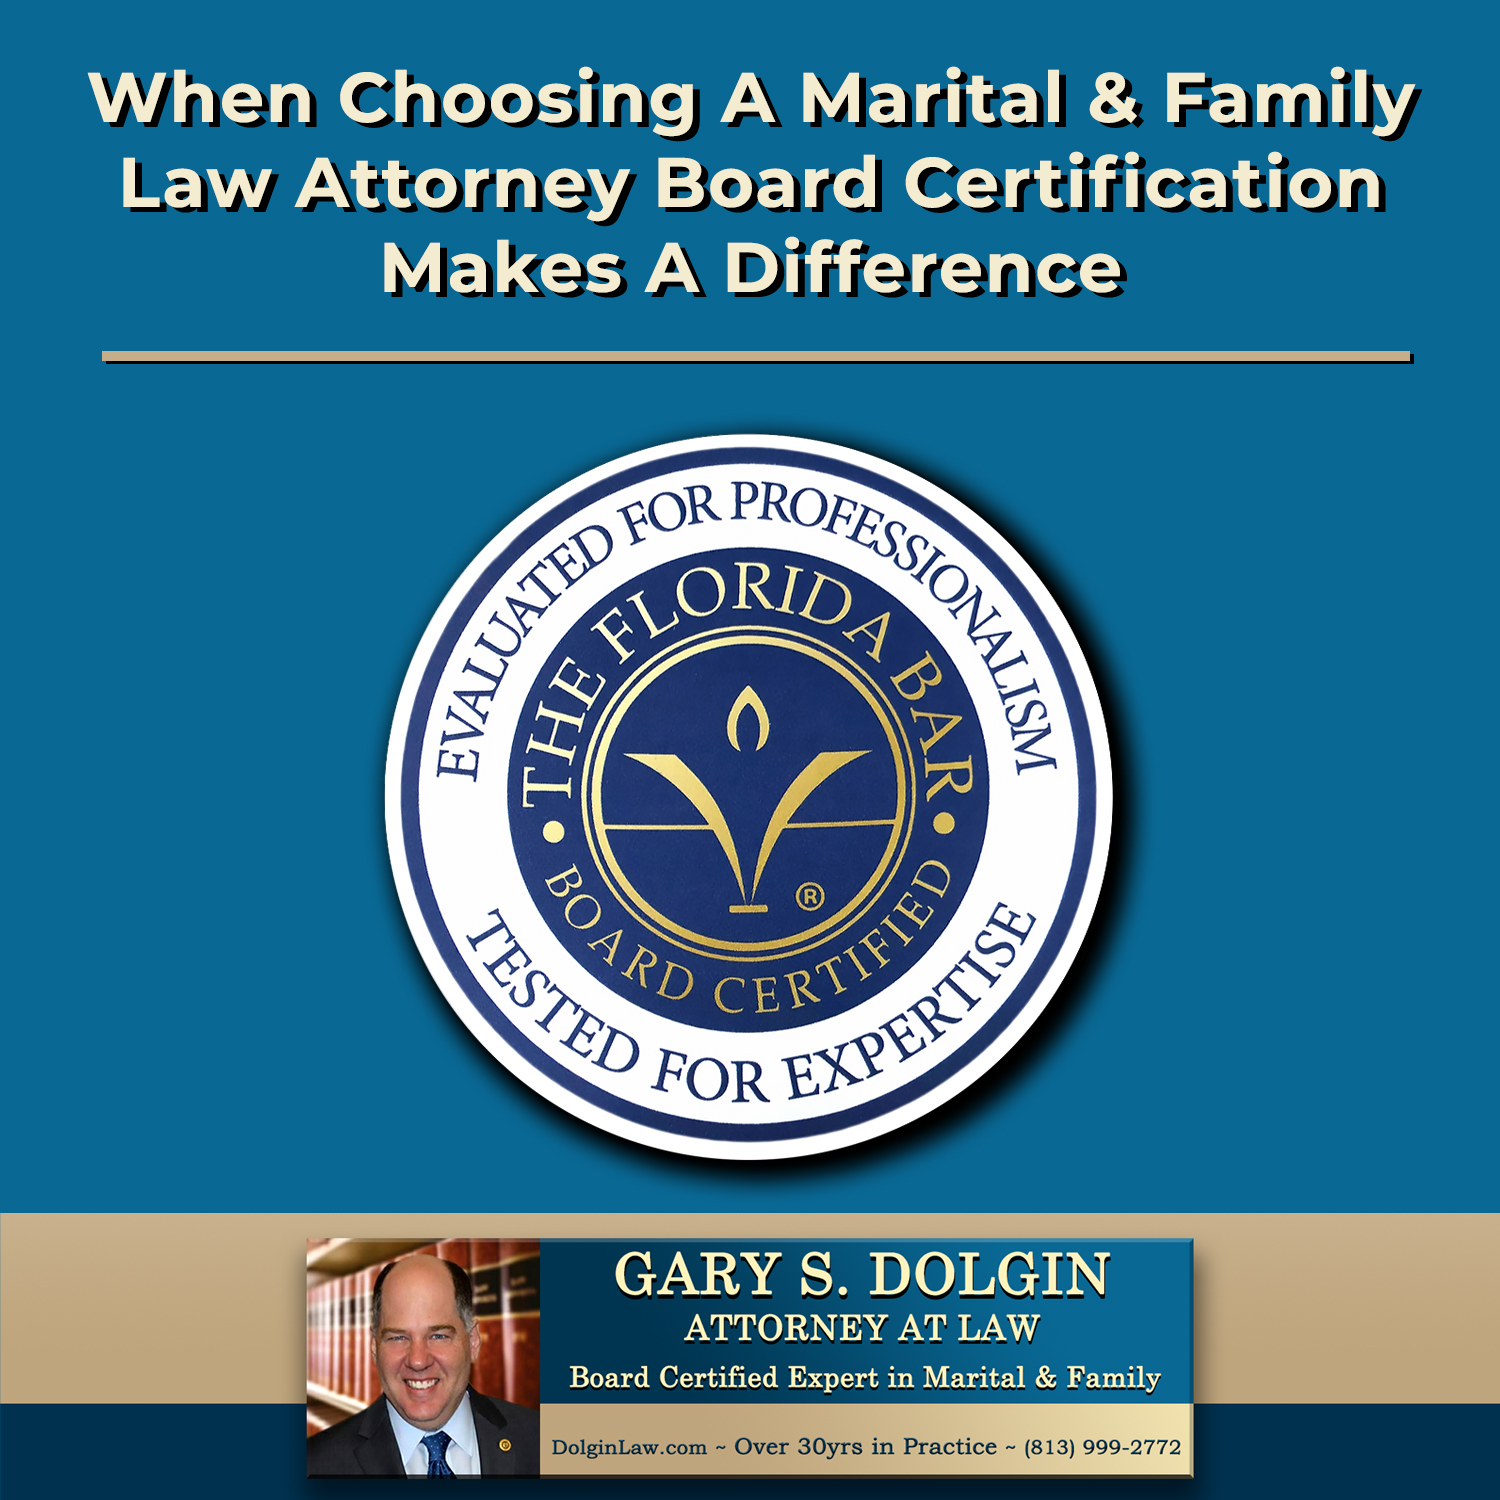 Board Certified Family Lawyer Tampa